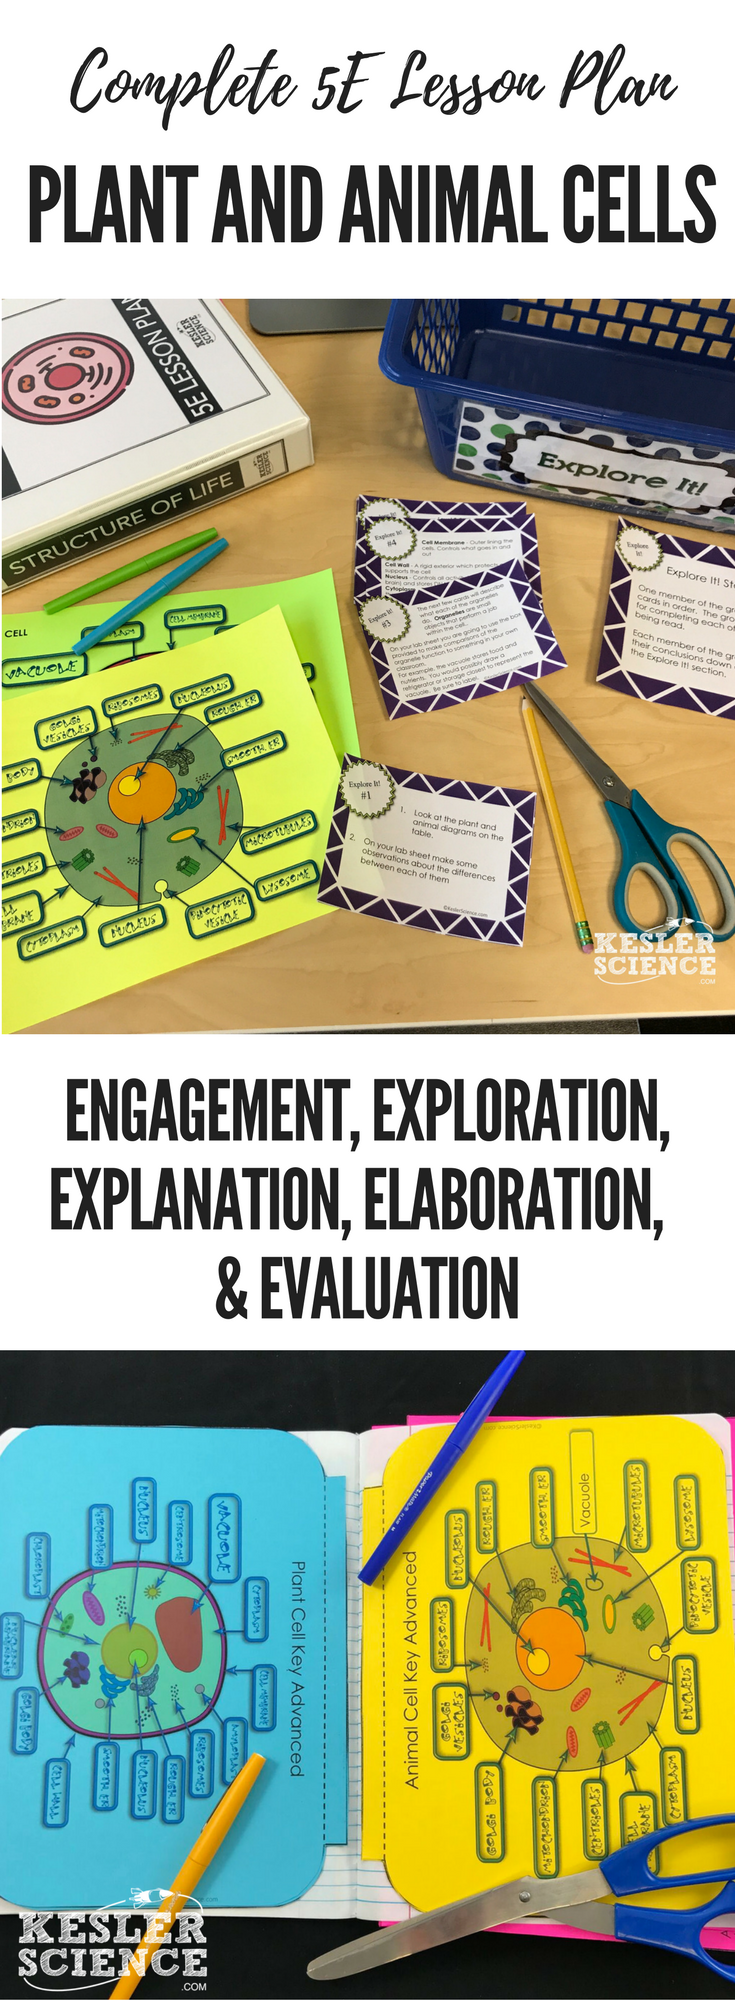 Plant And Animal Cells 5e Lesson Plan Science Experiments Pin Related Pictures Cell Diagram Using Free Printable Venn On Ready To Print Teach The Entire Biology Unit Includes Word Wall Of Vocabulary Interactive Notebook